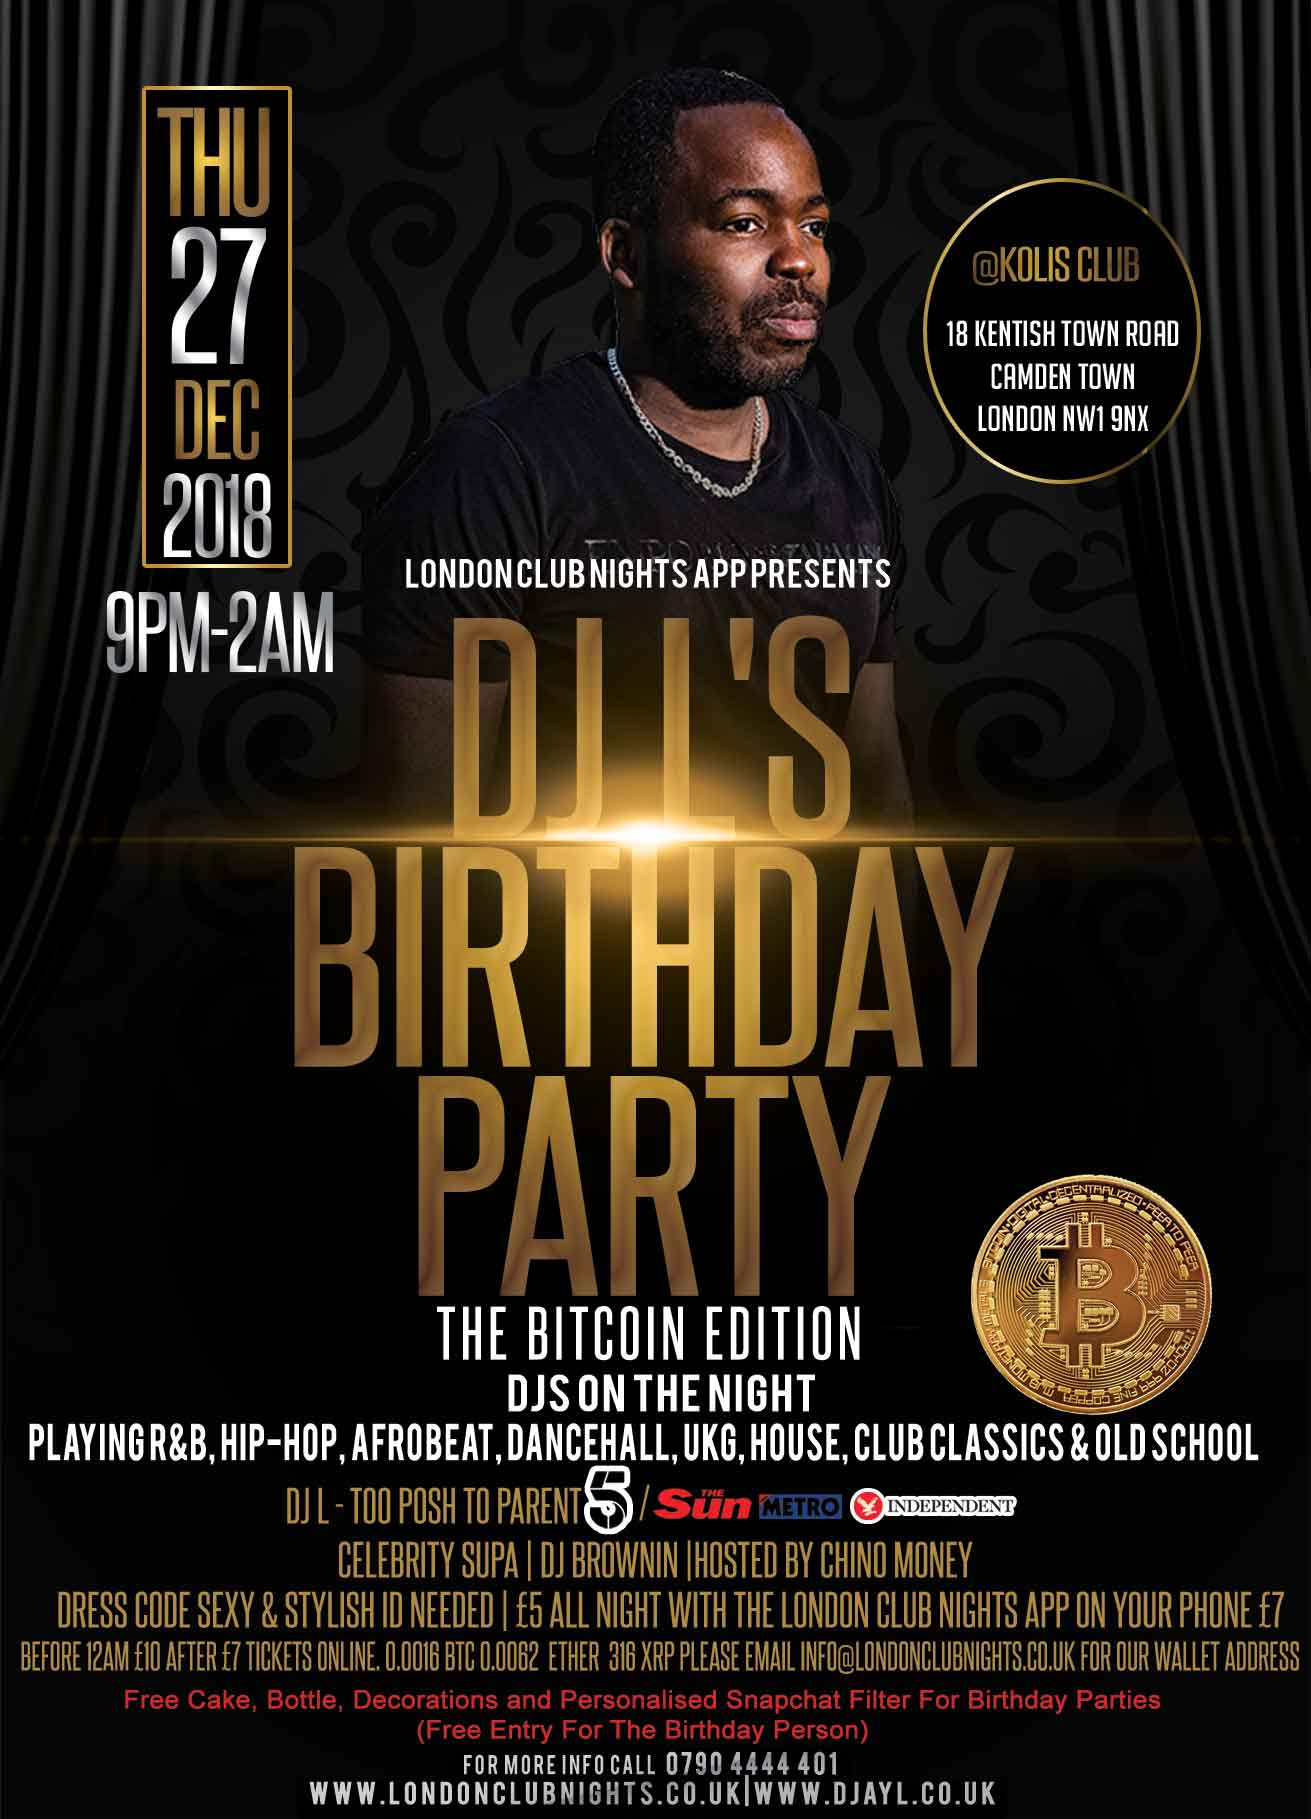 DJ L's Birthday Party